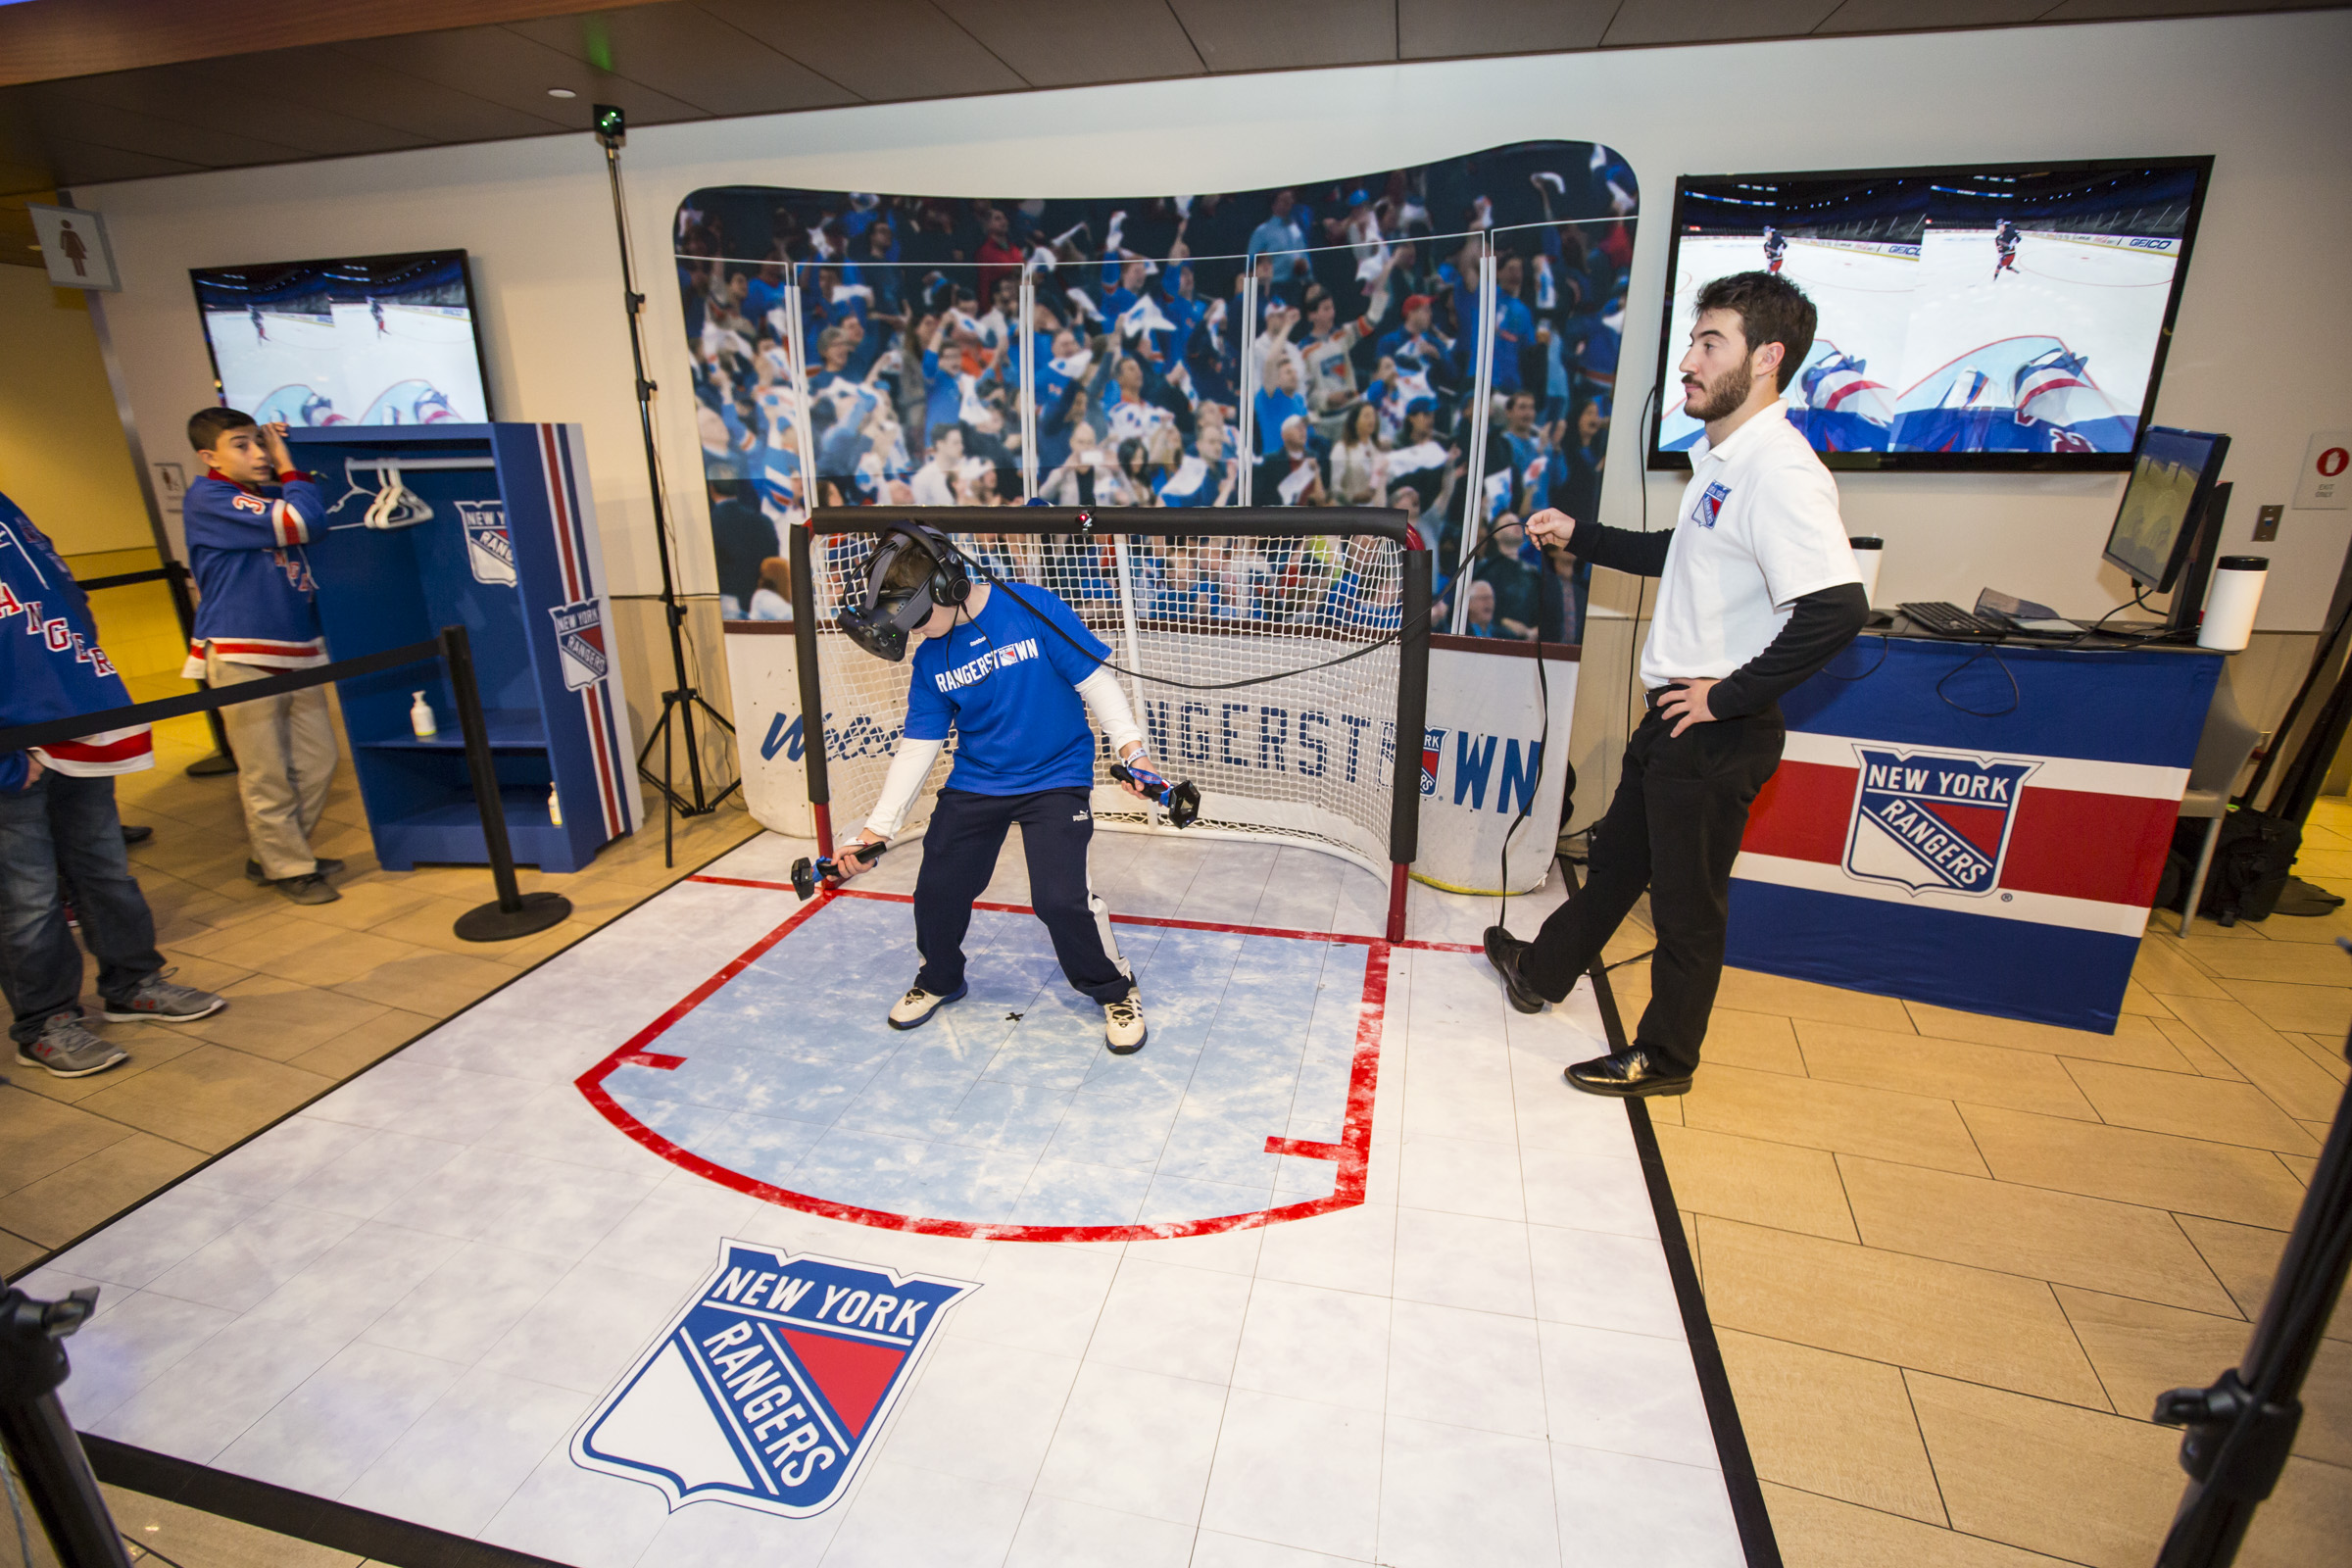 StriVR puts Rangers fans between the virtual pipes at Madison Square Garden.